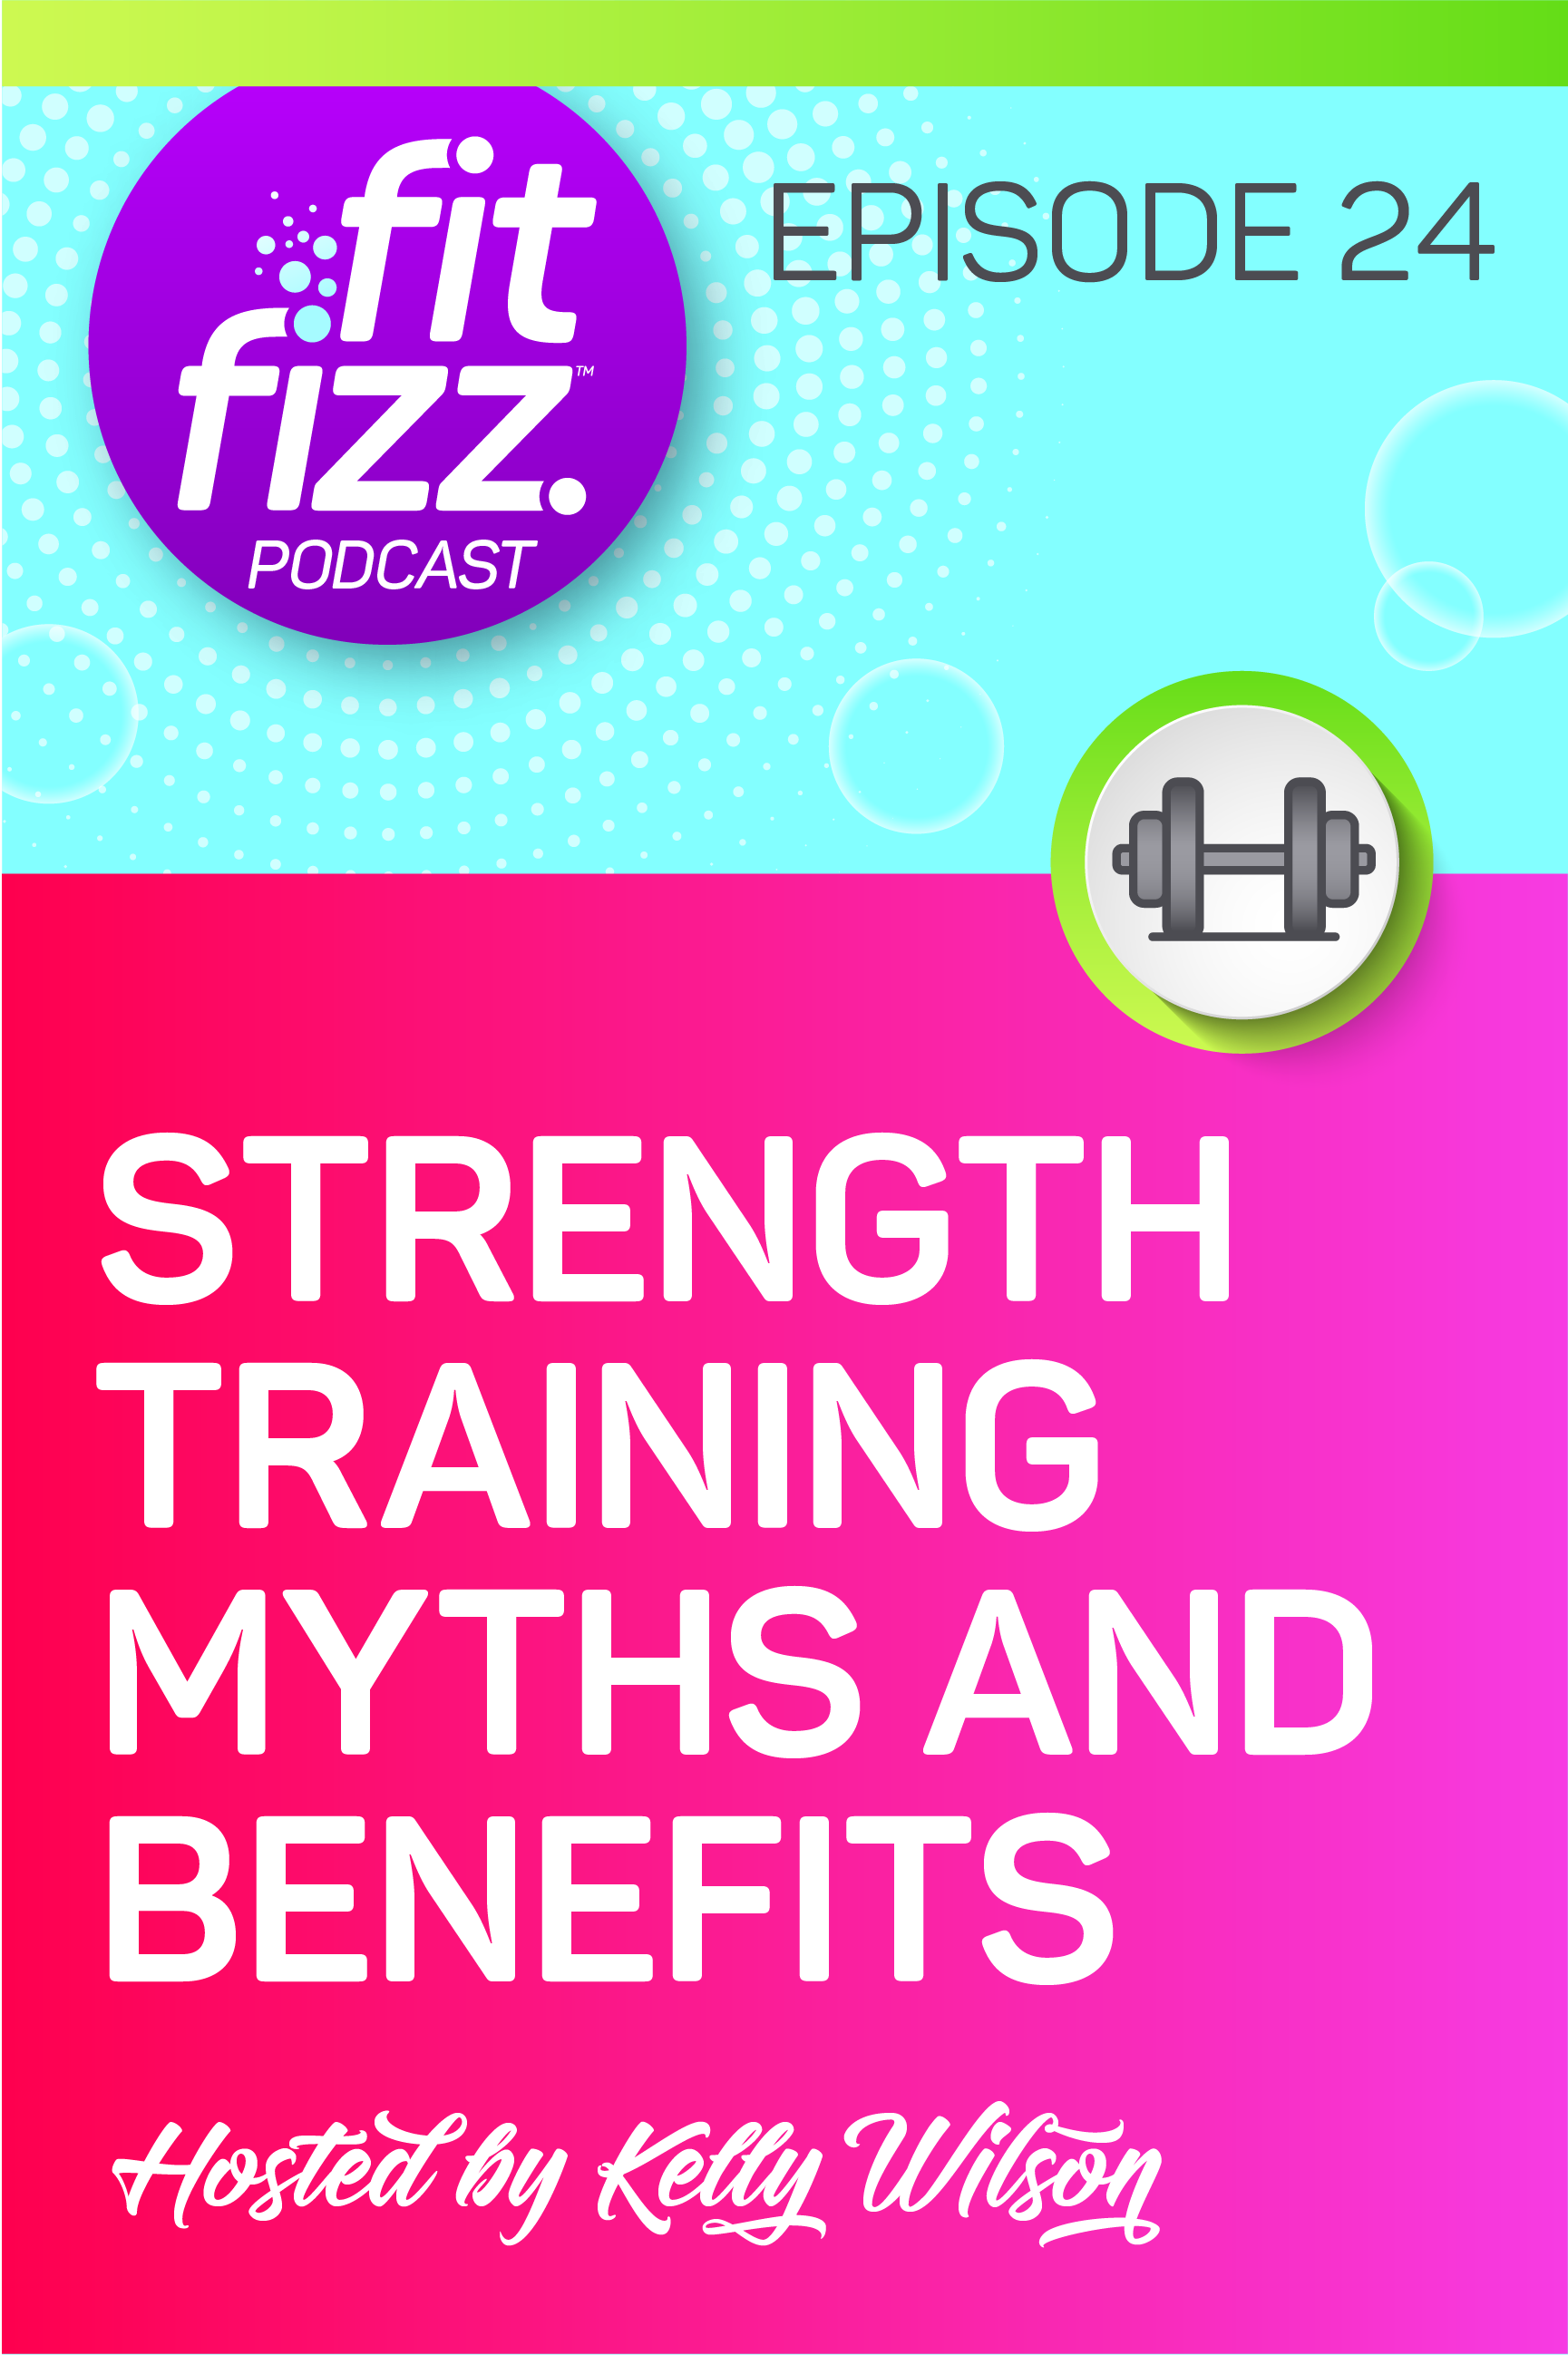 FitFizz Podcast Episode 24: Strength Training Myths and Benefits...Because nobody ever got their dream body from a treadmill! Learn why everybody should embrace resistance training.